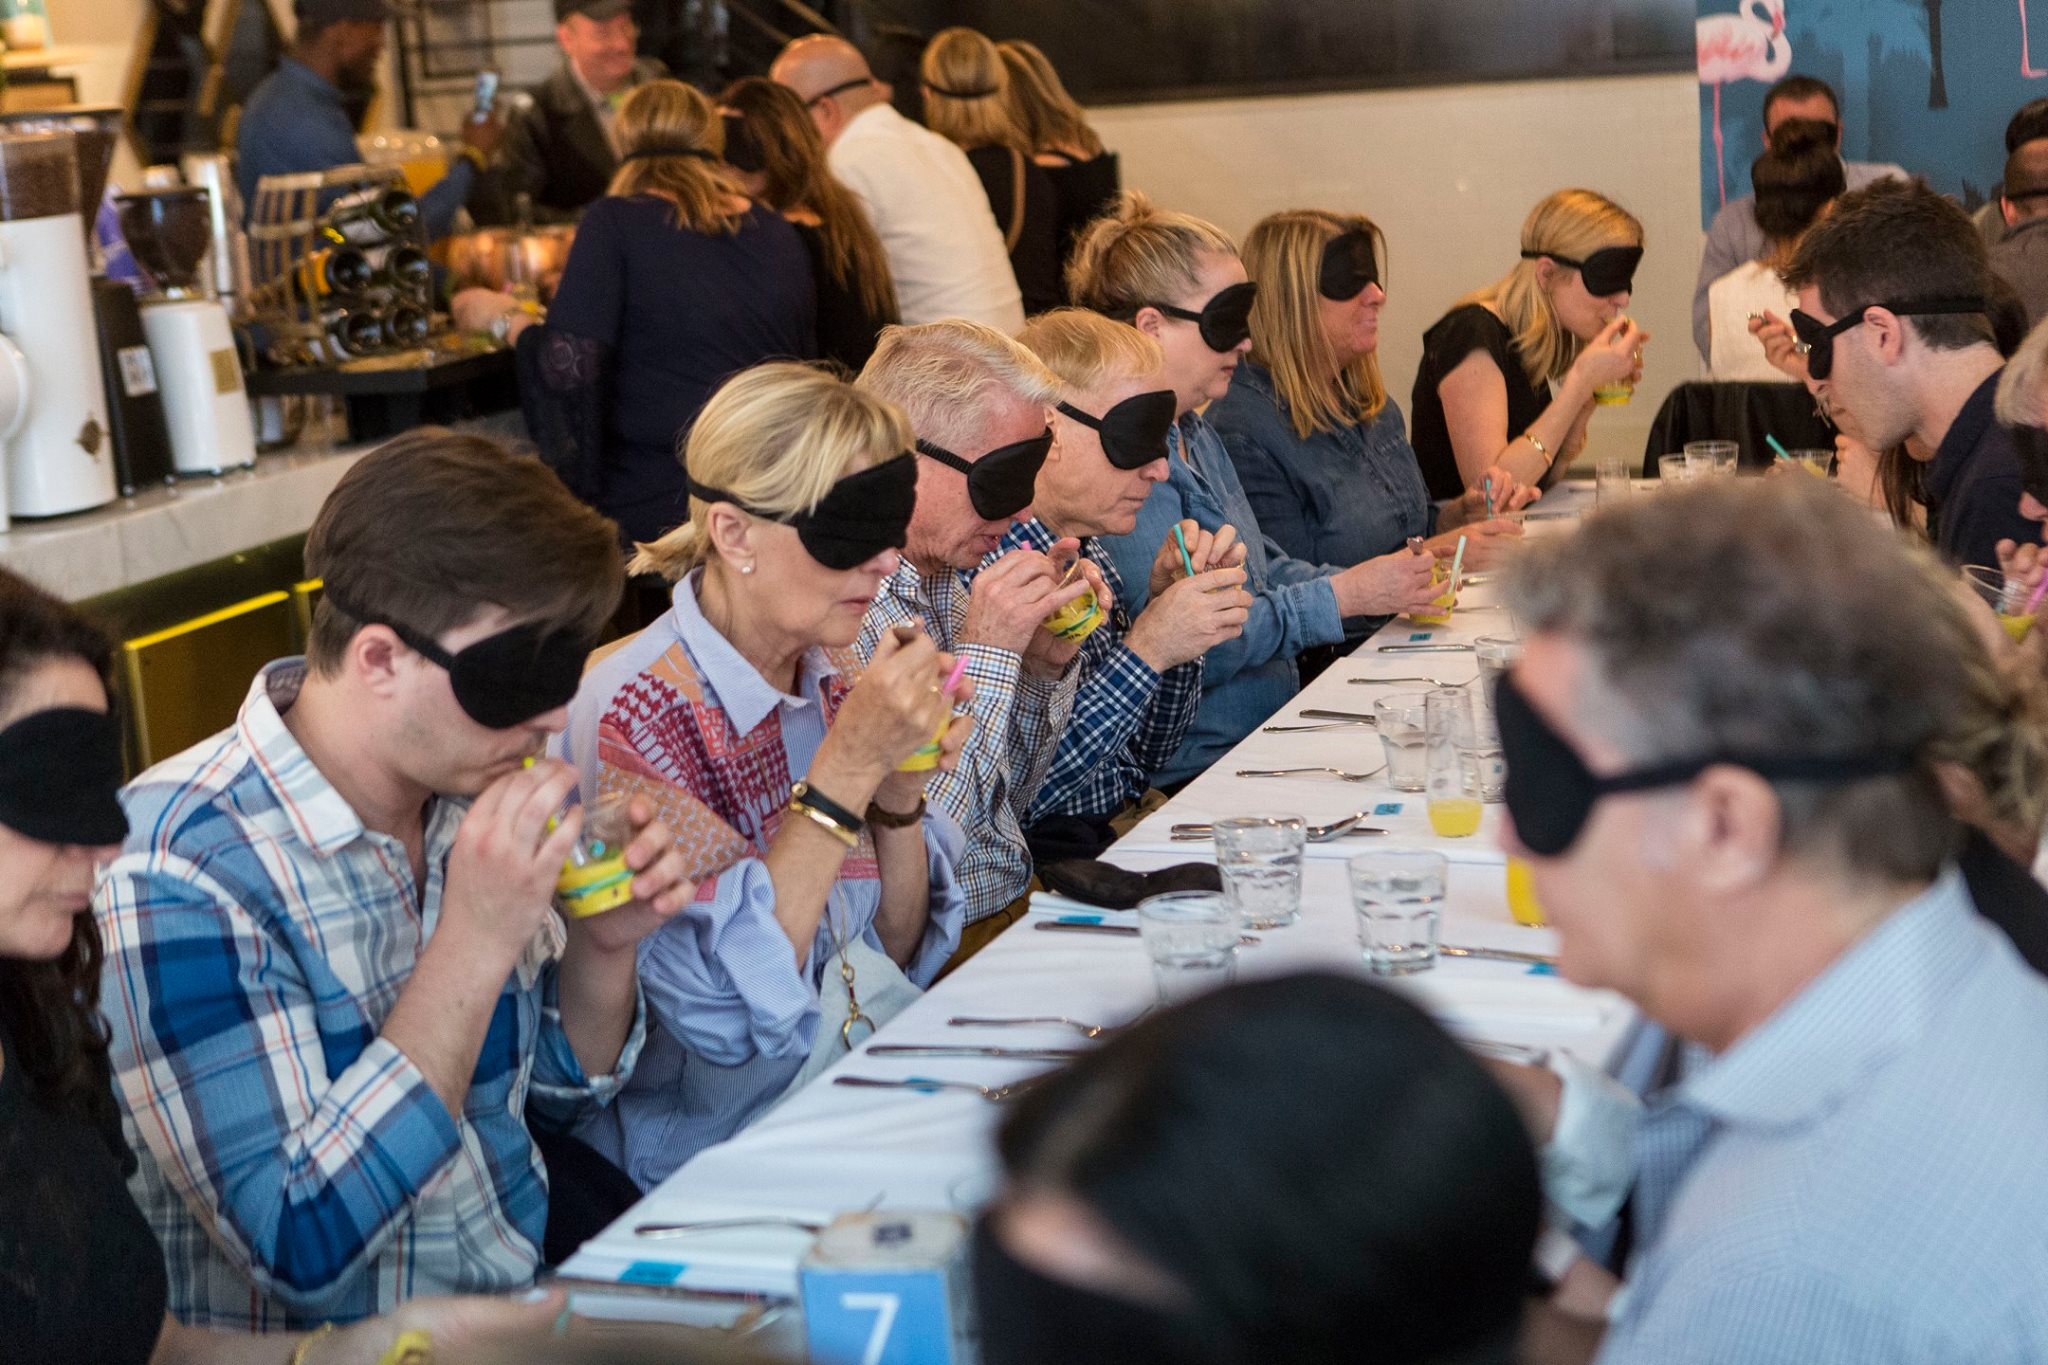 Brunch attendees blindfolded and drinking fruit drink